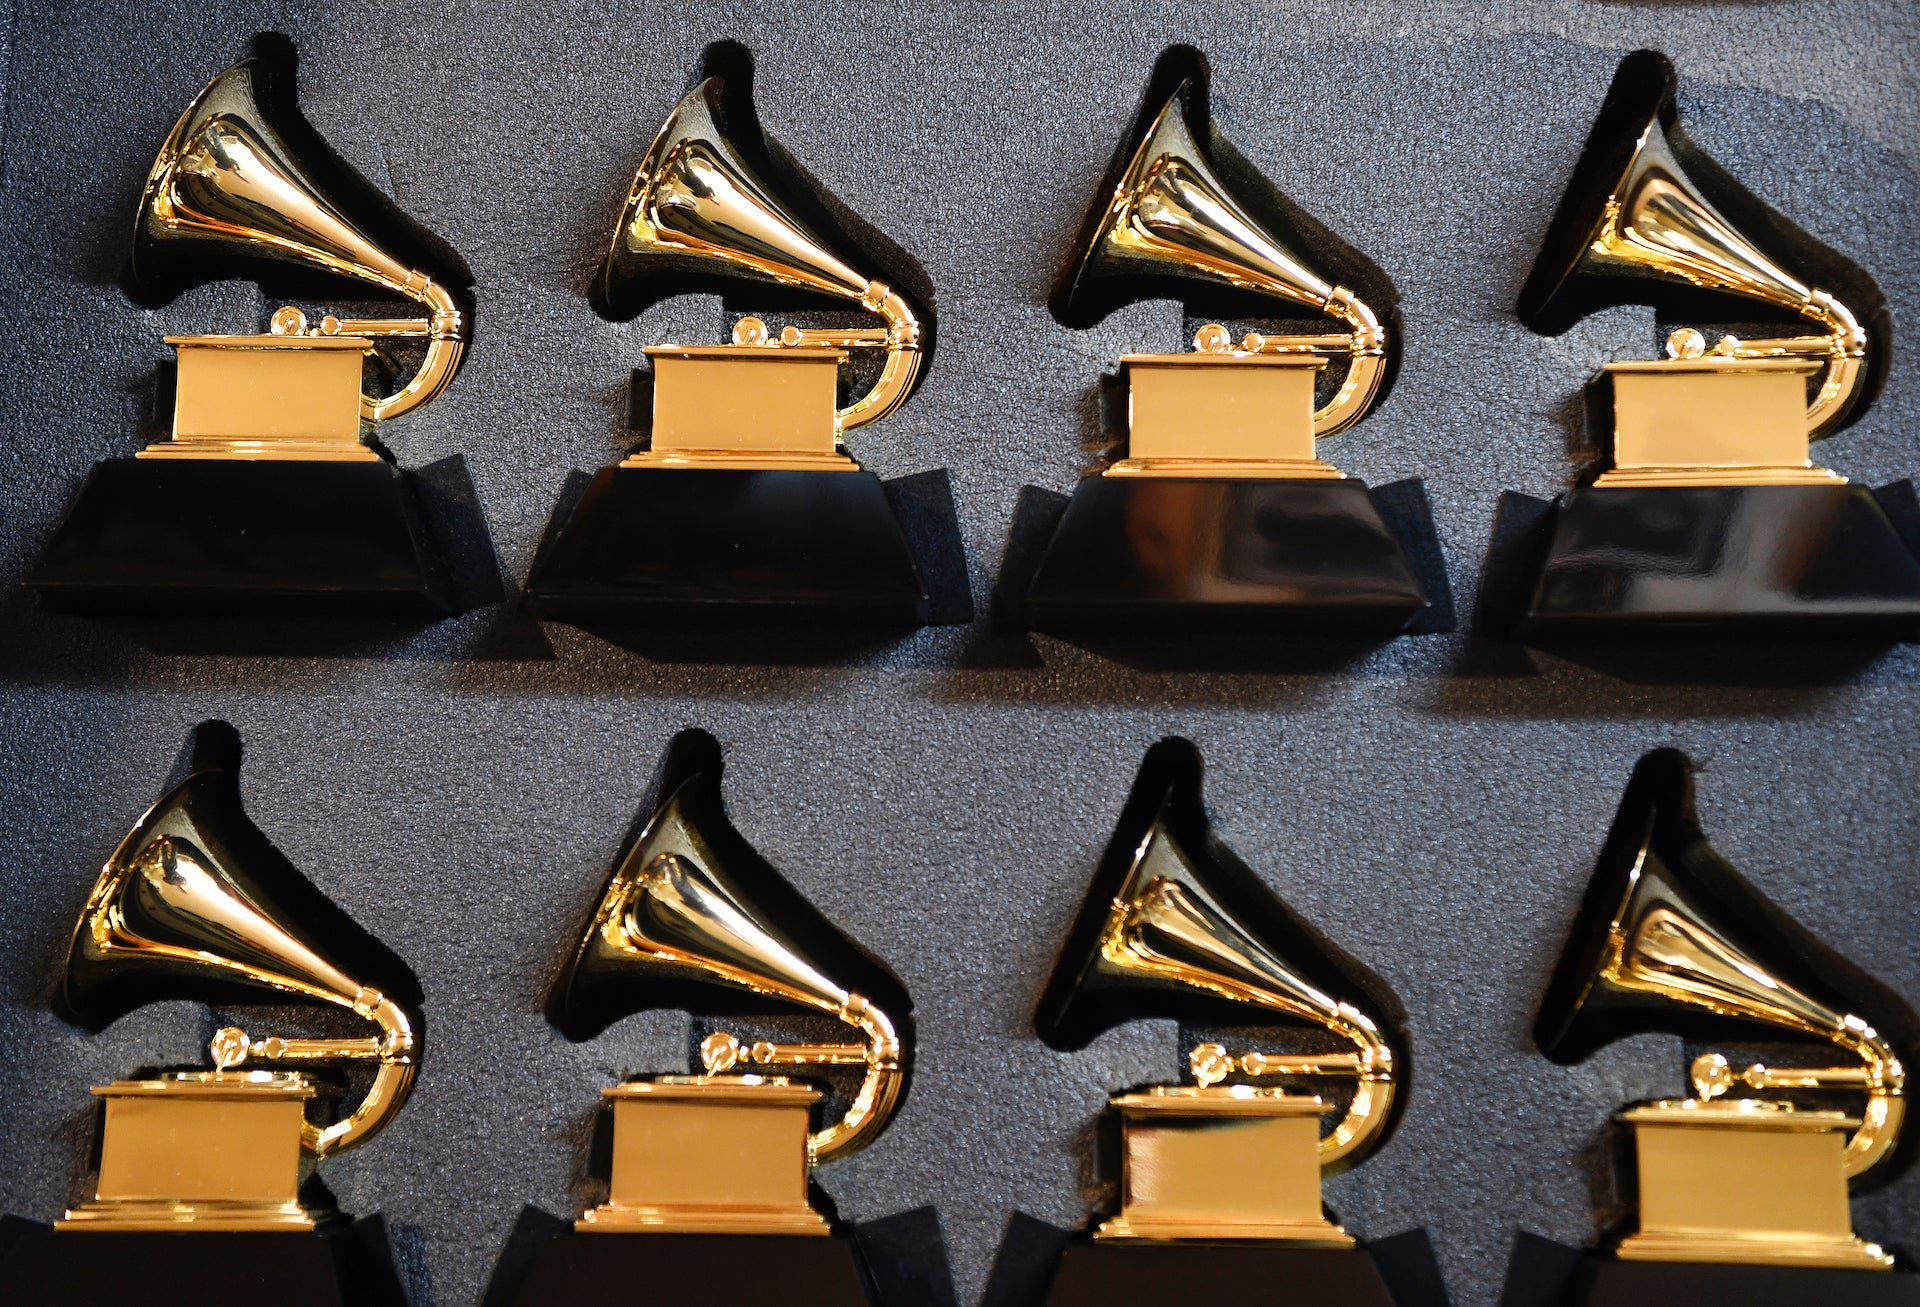 The Grammys Attempts To Be 'Inclusive' By Removing 'Urban' From One Category